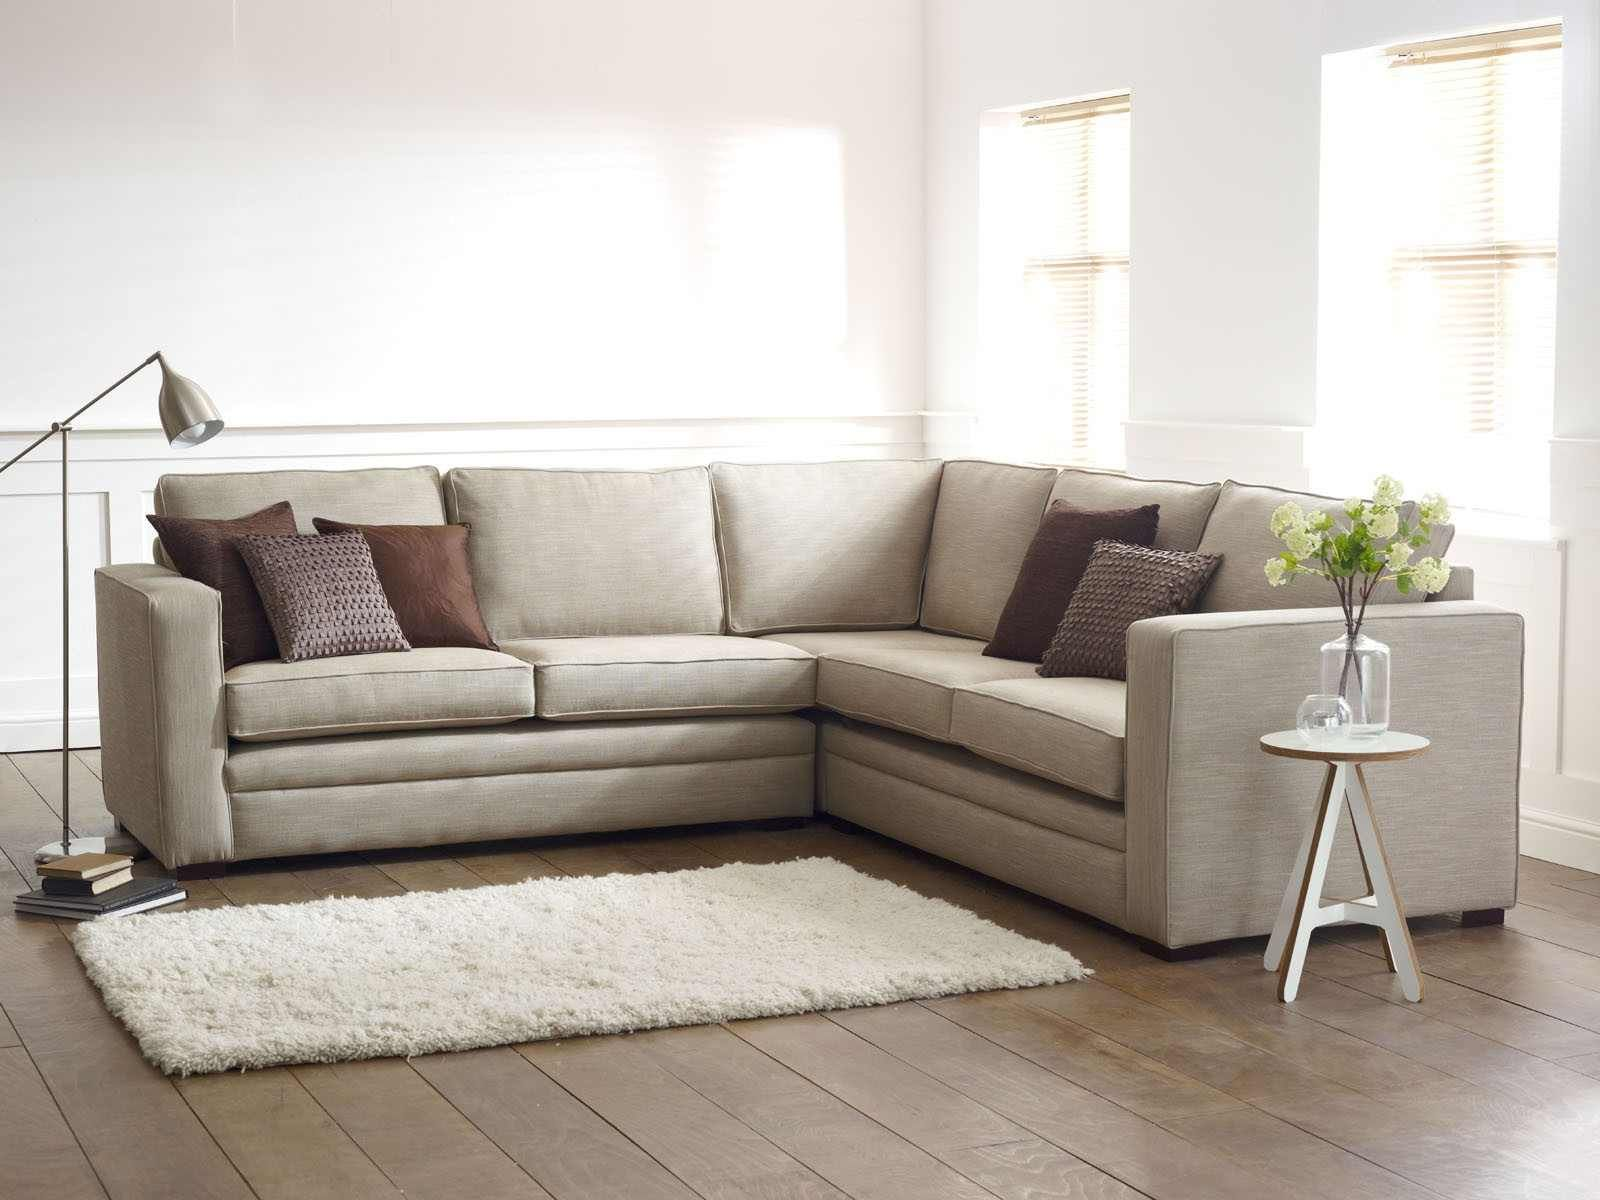 Wonderful Gray Sectional L Shaped Sofa Design Ideas For Living Room Furniture With Low Style Sofa